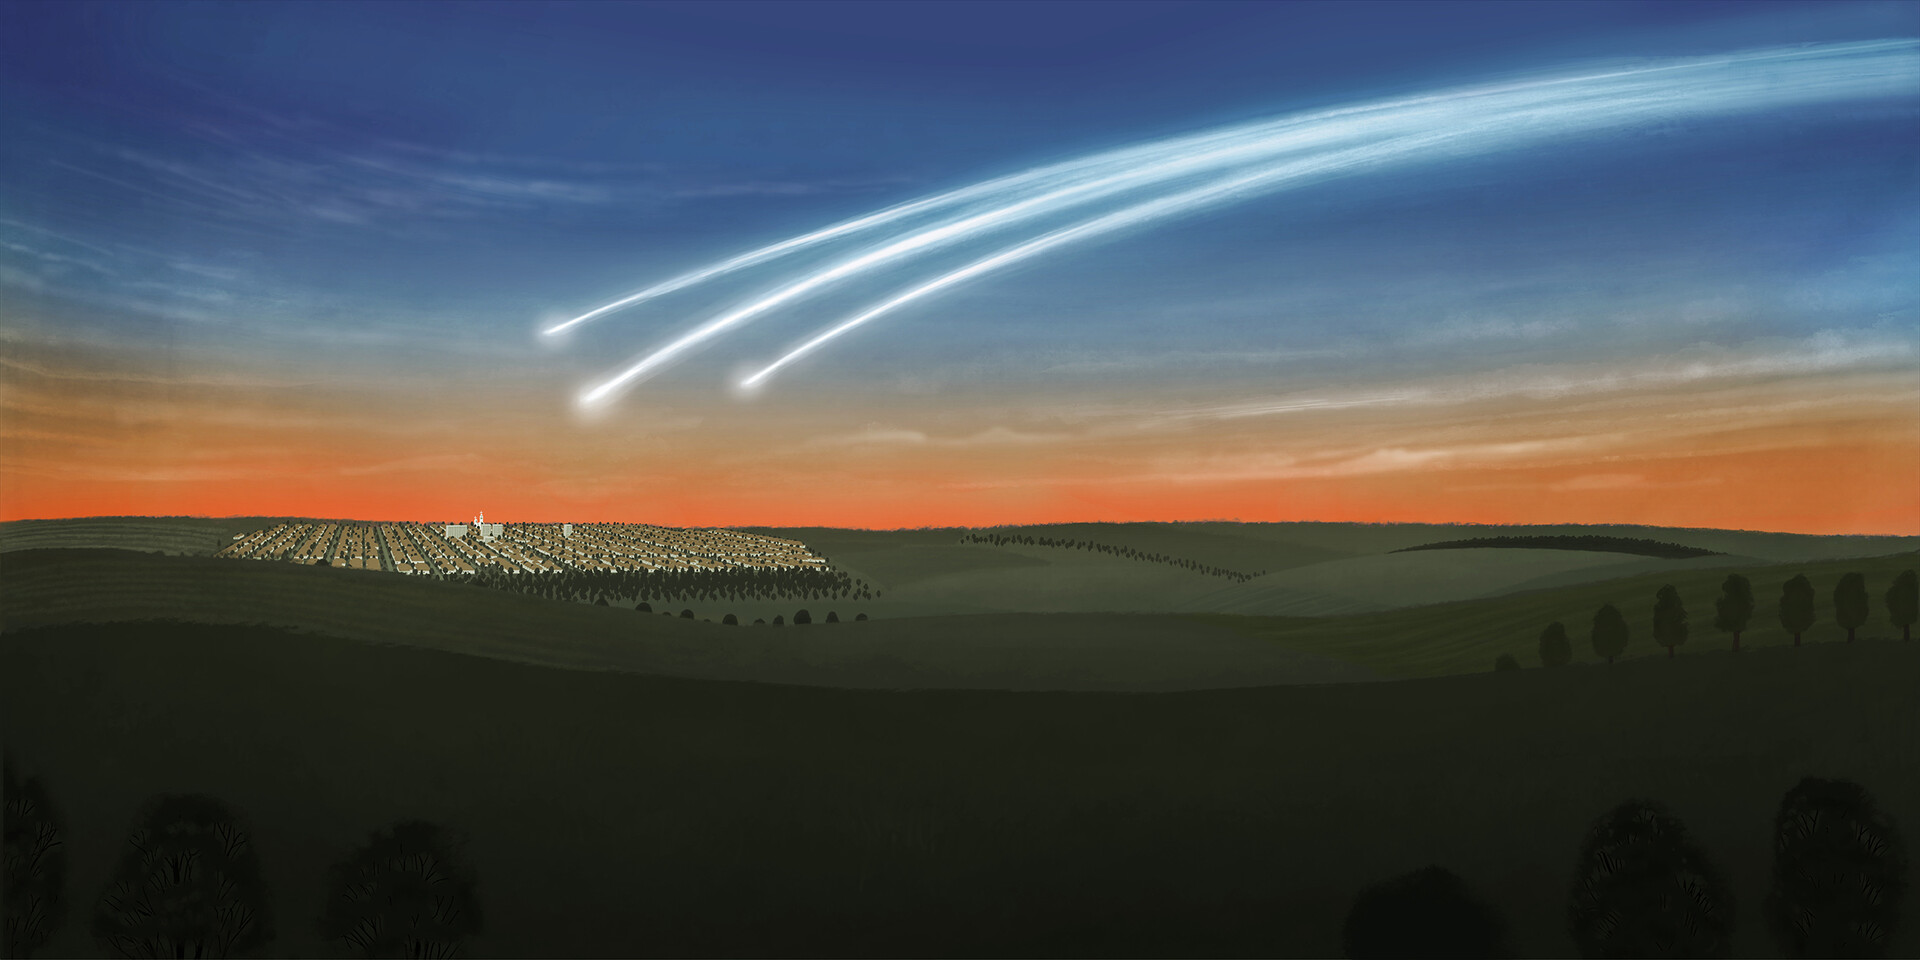 Part 5 - Meteor crossing the sky of Marilia - SP, breaking into 3 smaller pieces, before reaching the ground of the city, in the late afternoon of October 5, 1971.